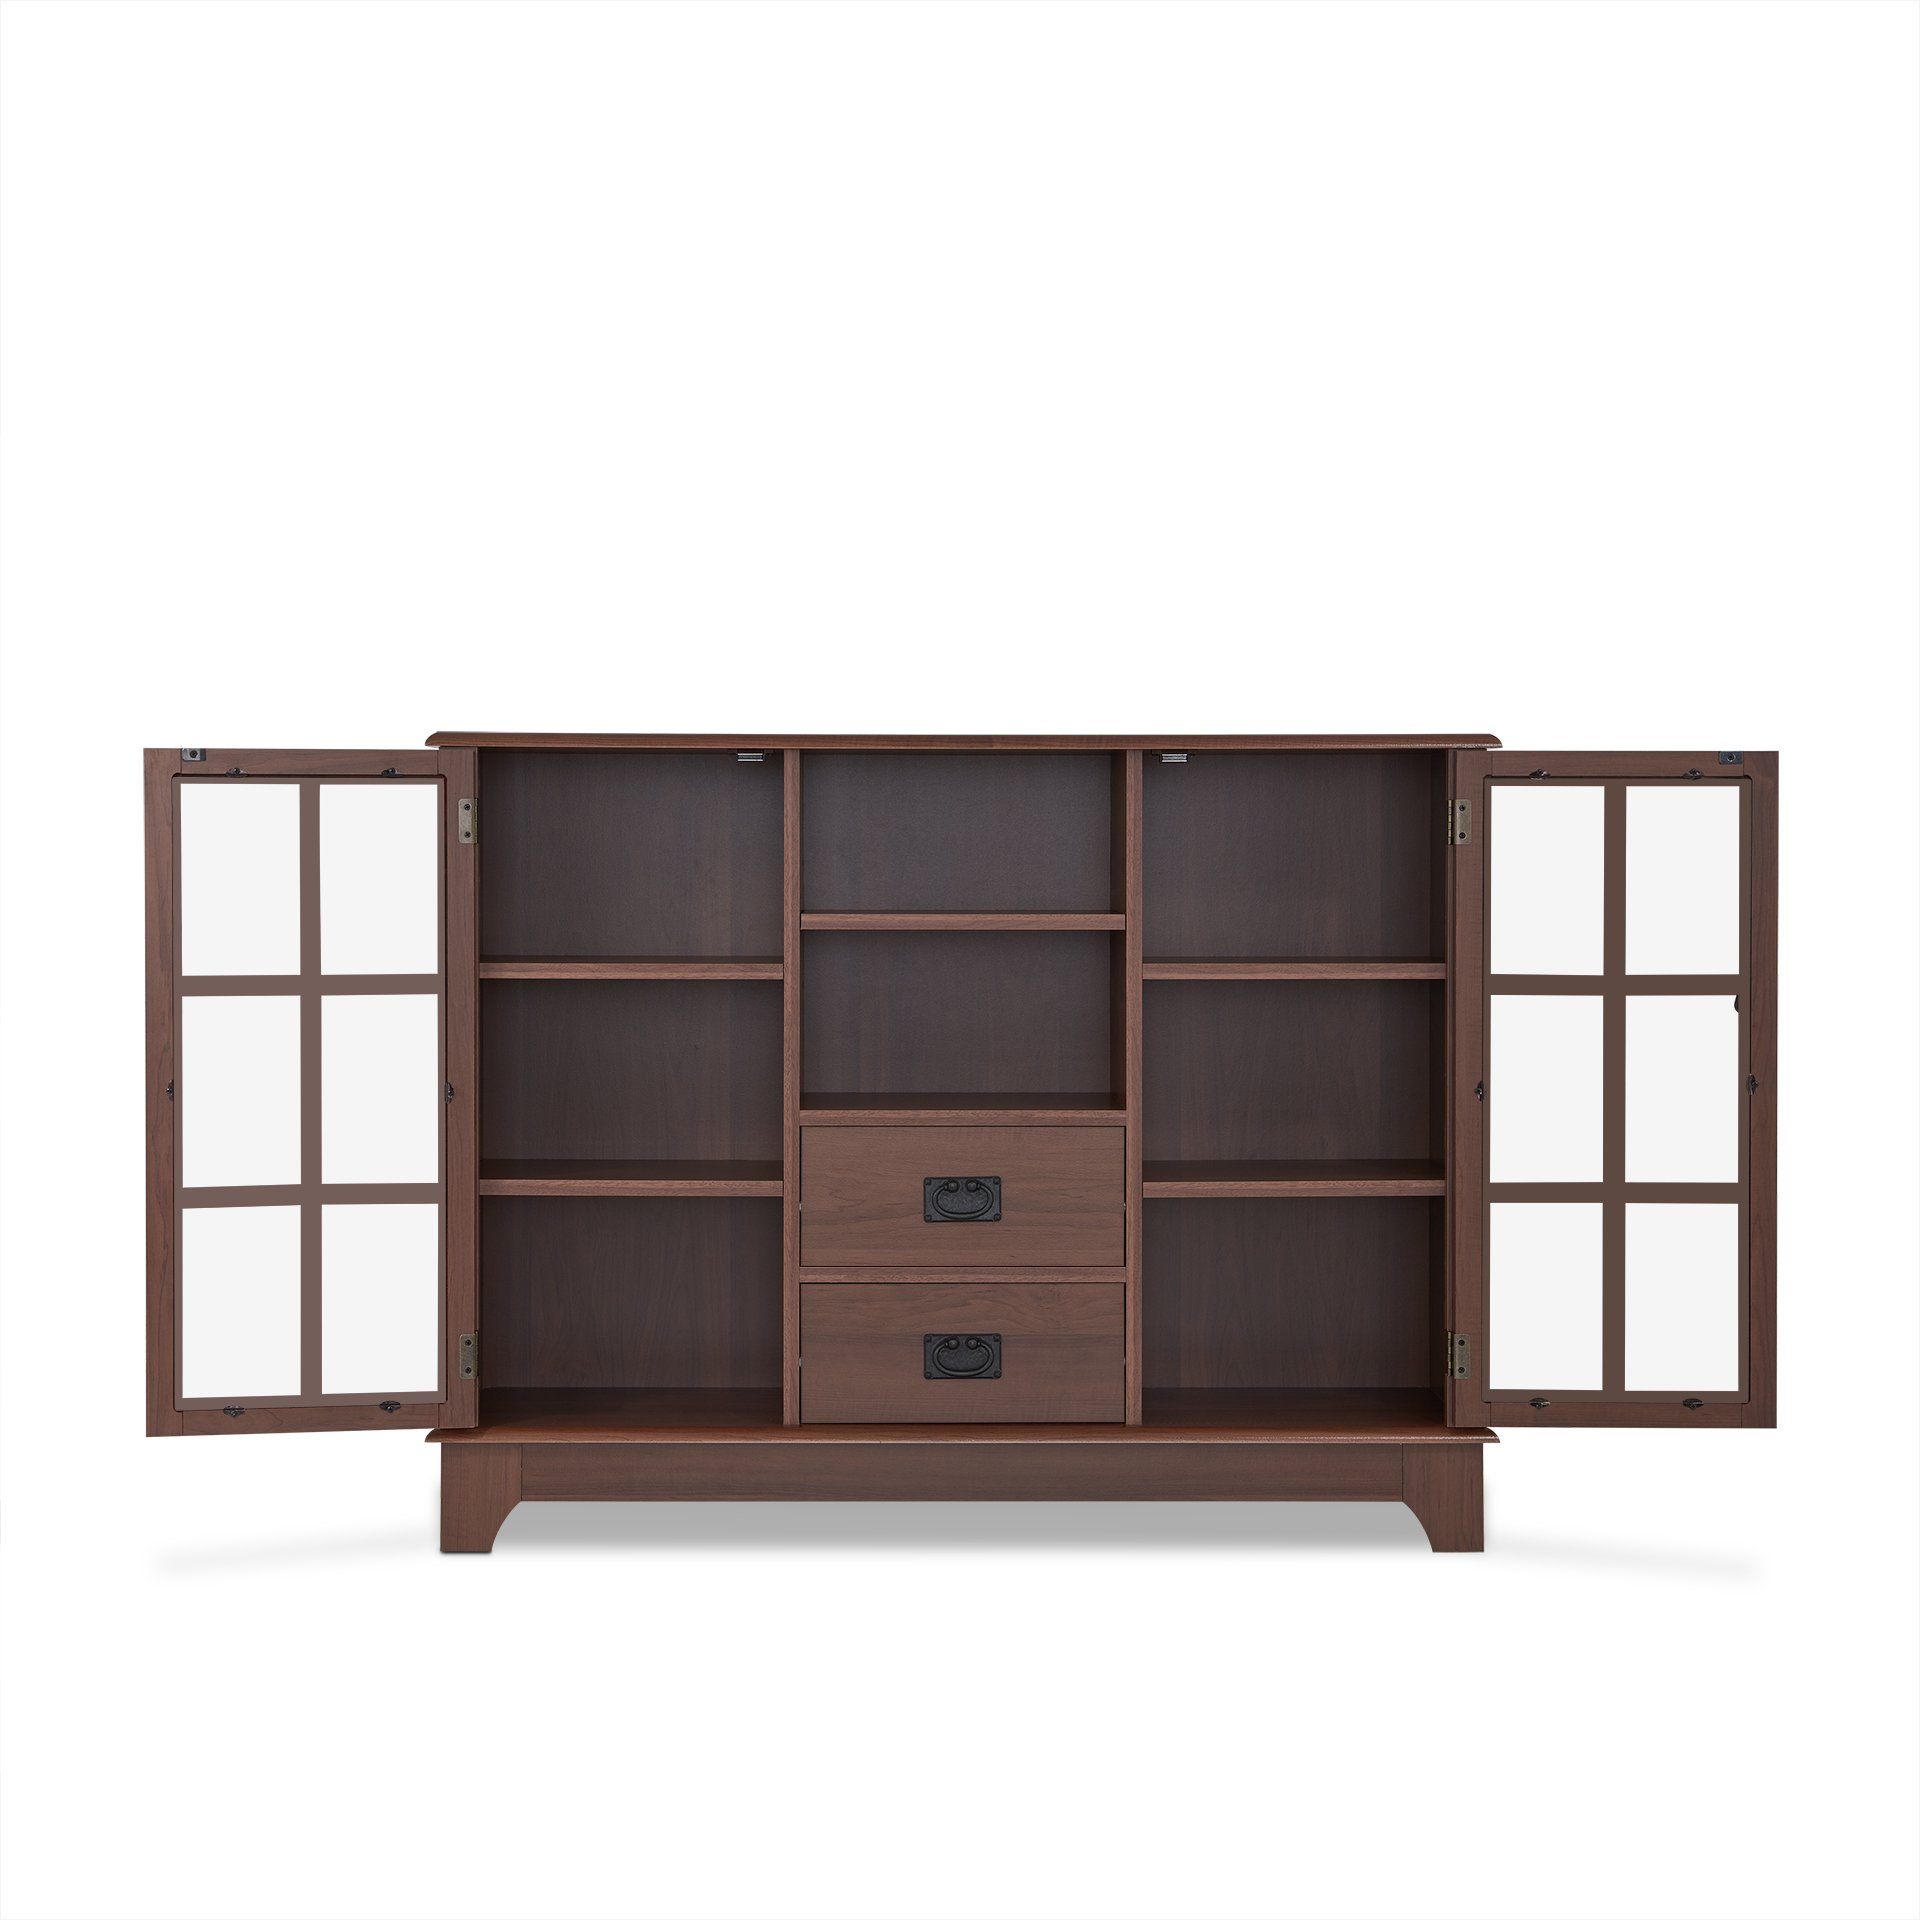 ComfortScape Wooden Console Table with Storage & Tempered Glass Door, Walnut